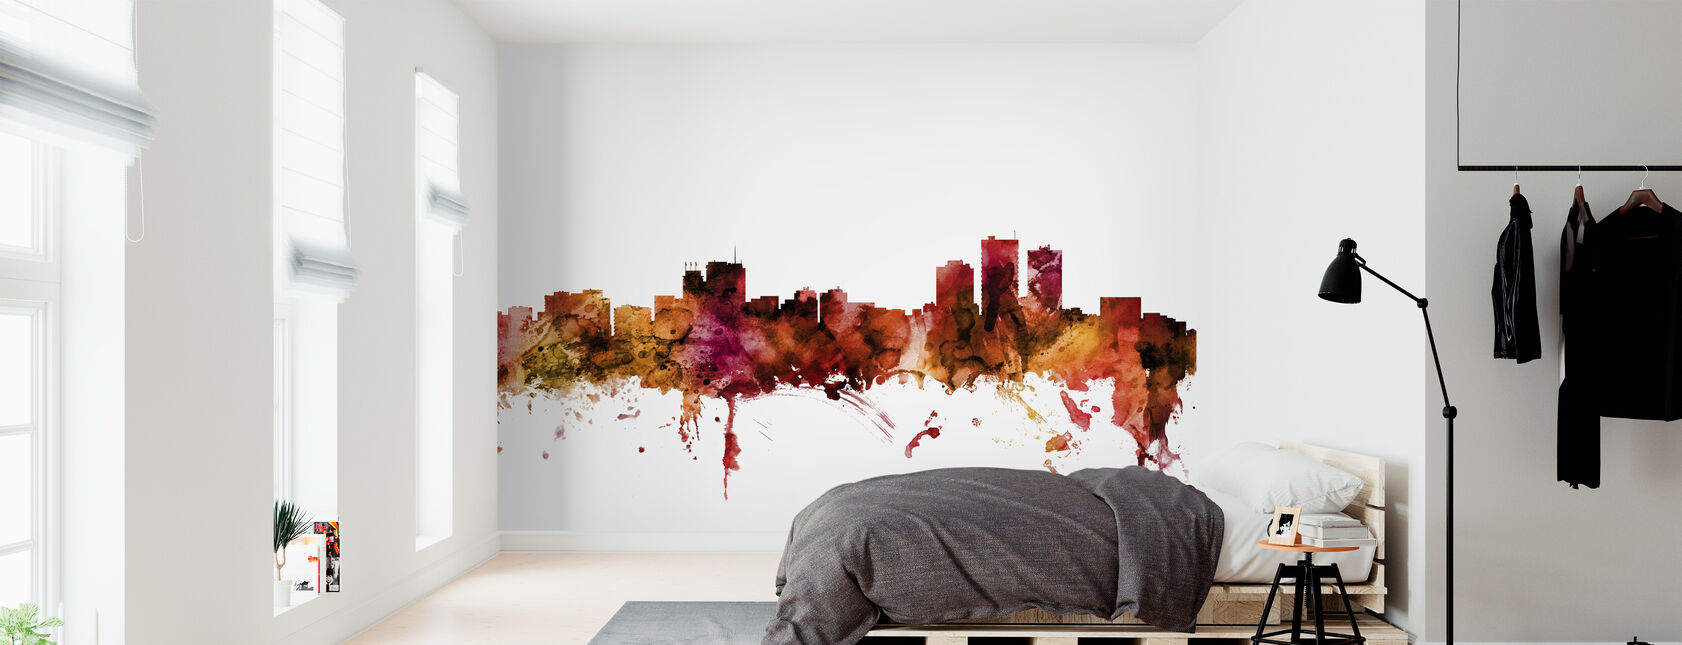 Anchorage Alaska Skyline - Wallpaper - Bedroom